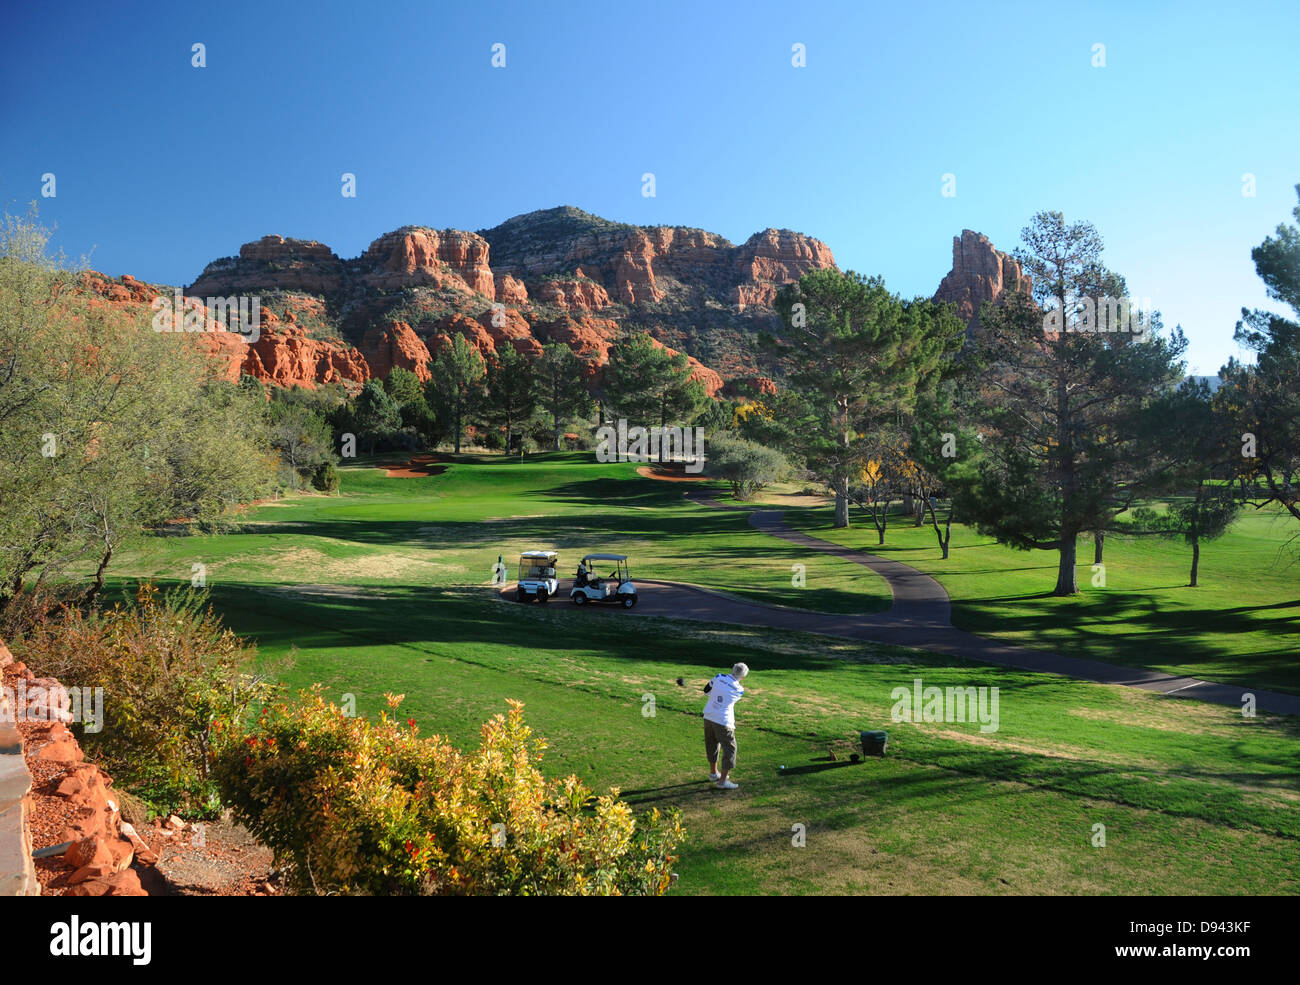 Oakcreek Country Club golf course in Sedona, Arizona surrounded by red rock formations - Stock Image